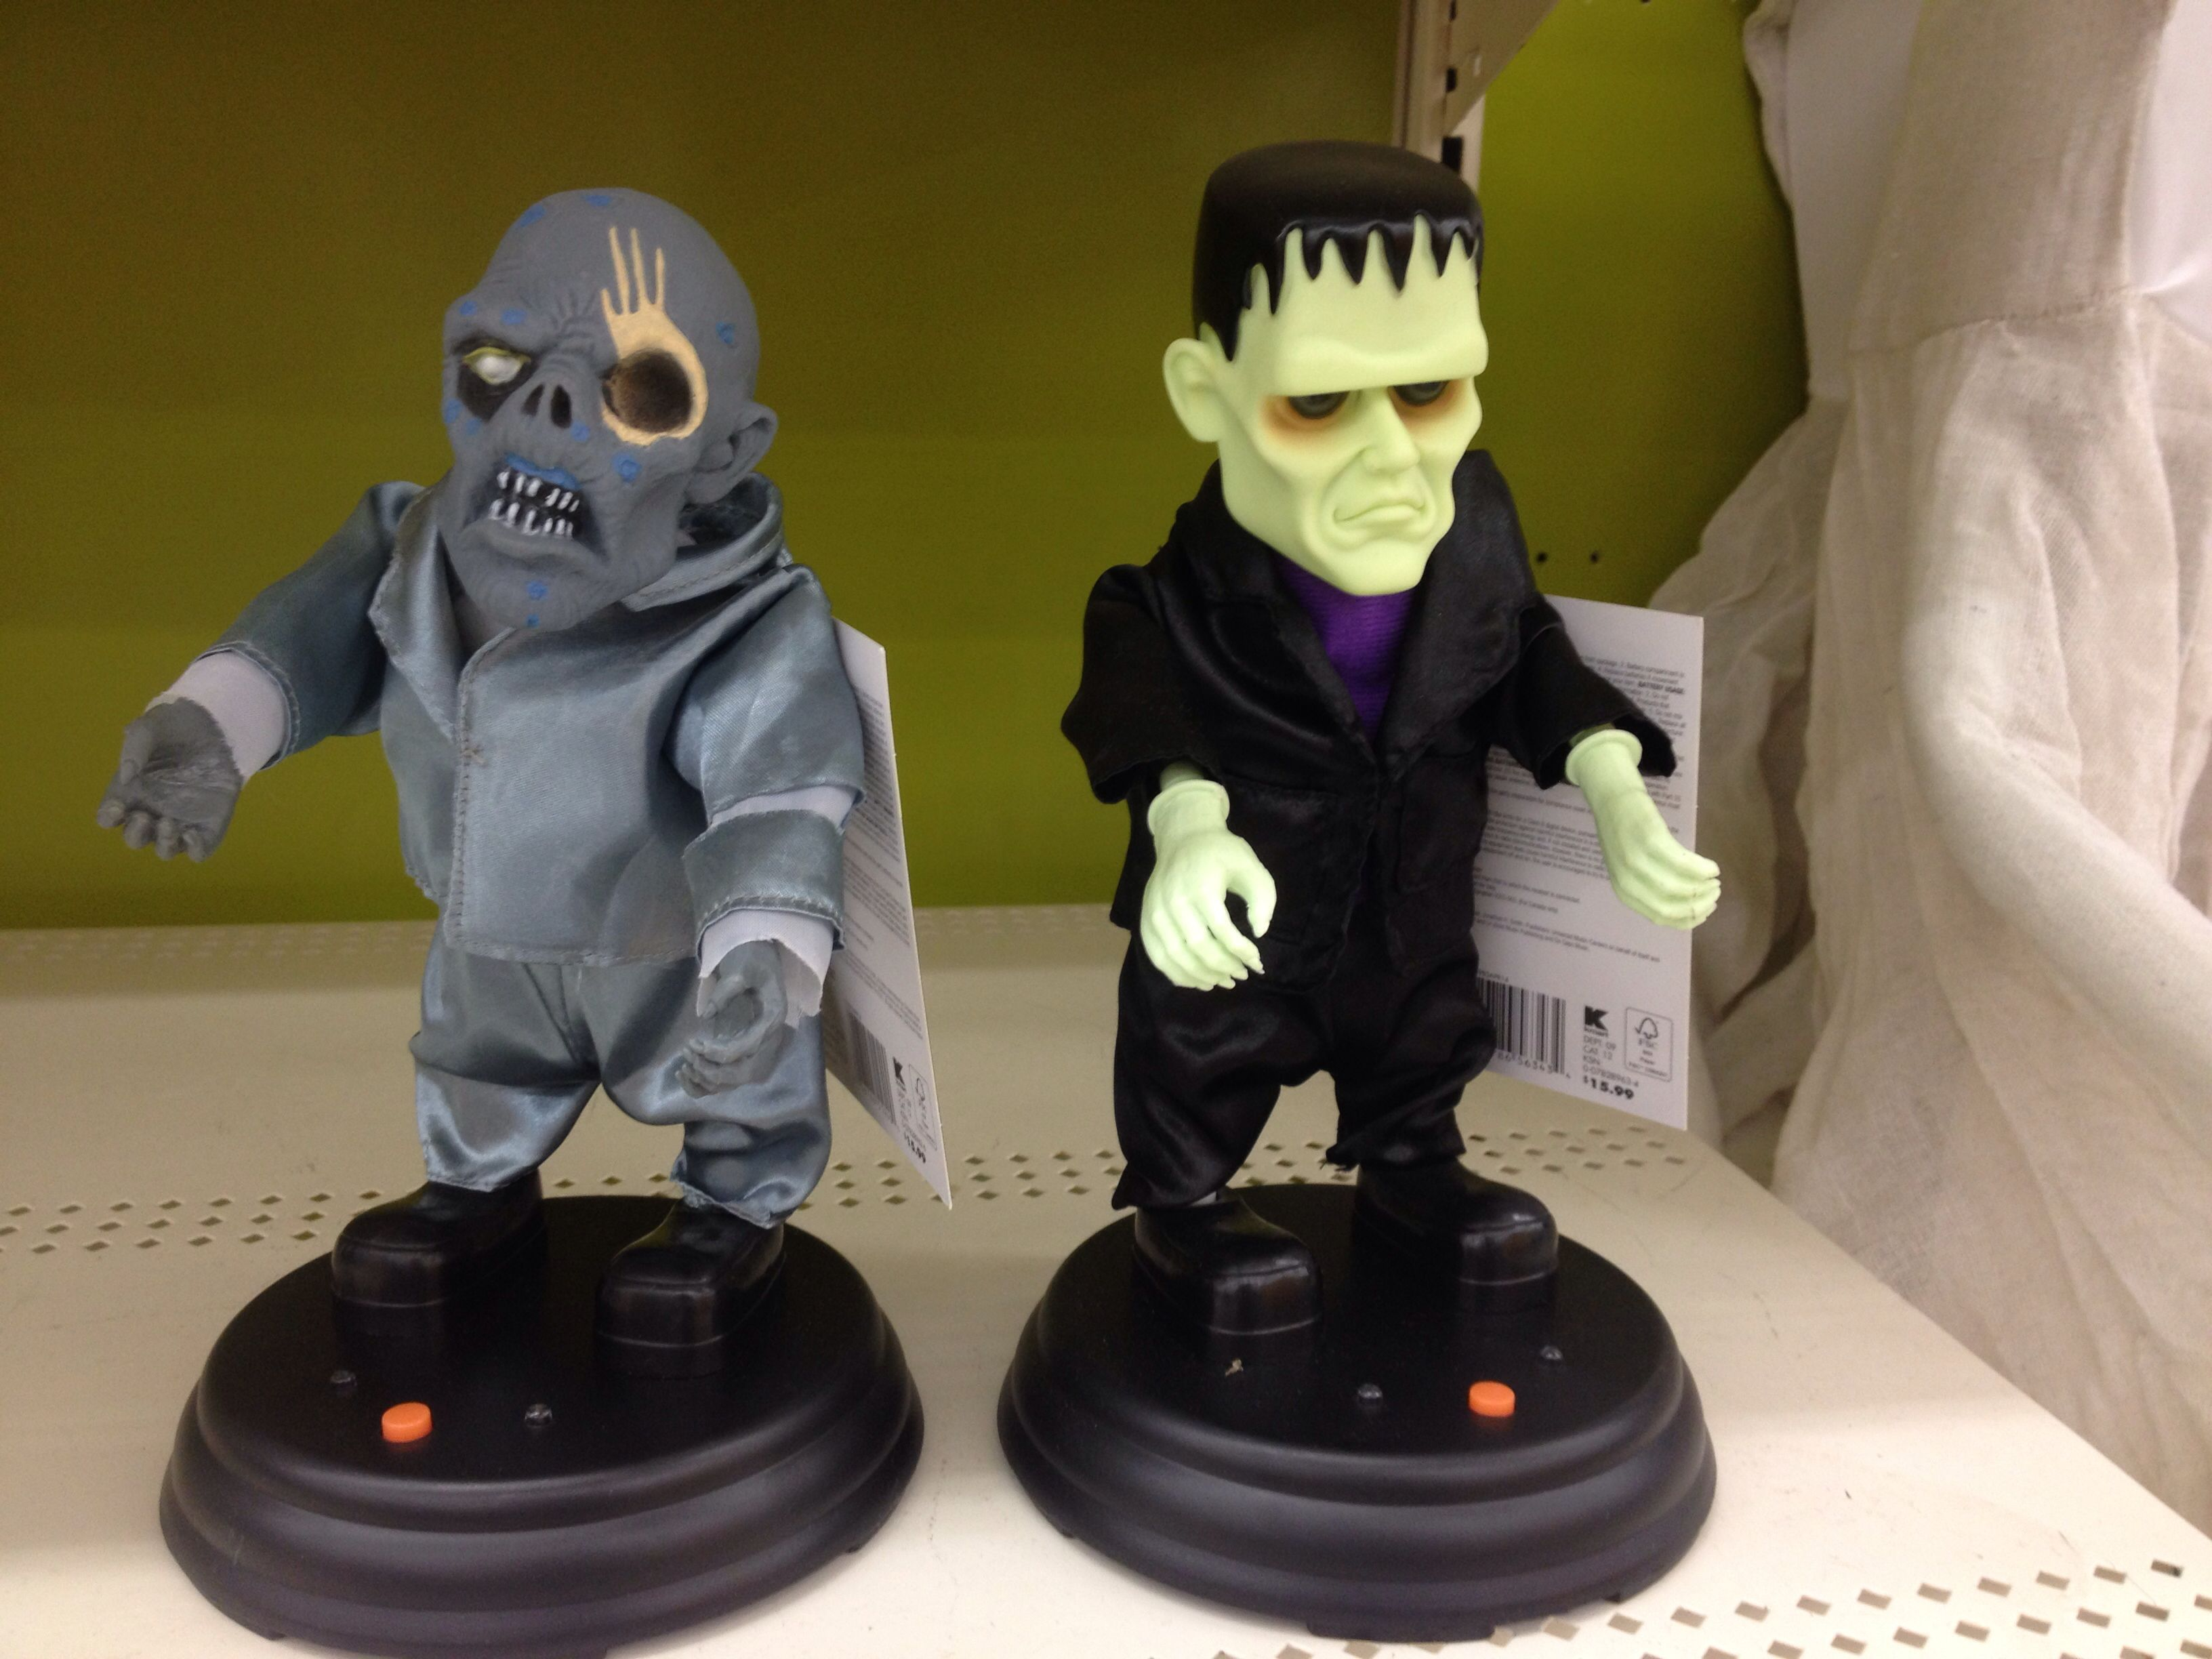 grave ravers at kmart halloween decorations - Kmart Halloween Decorations